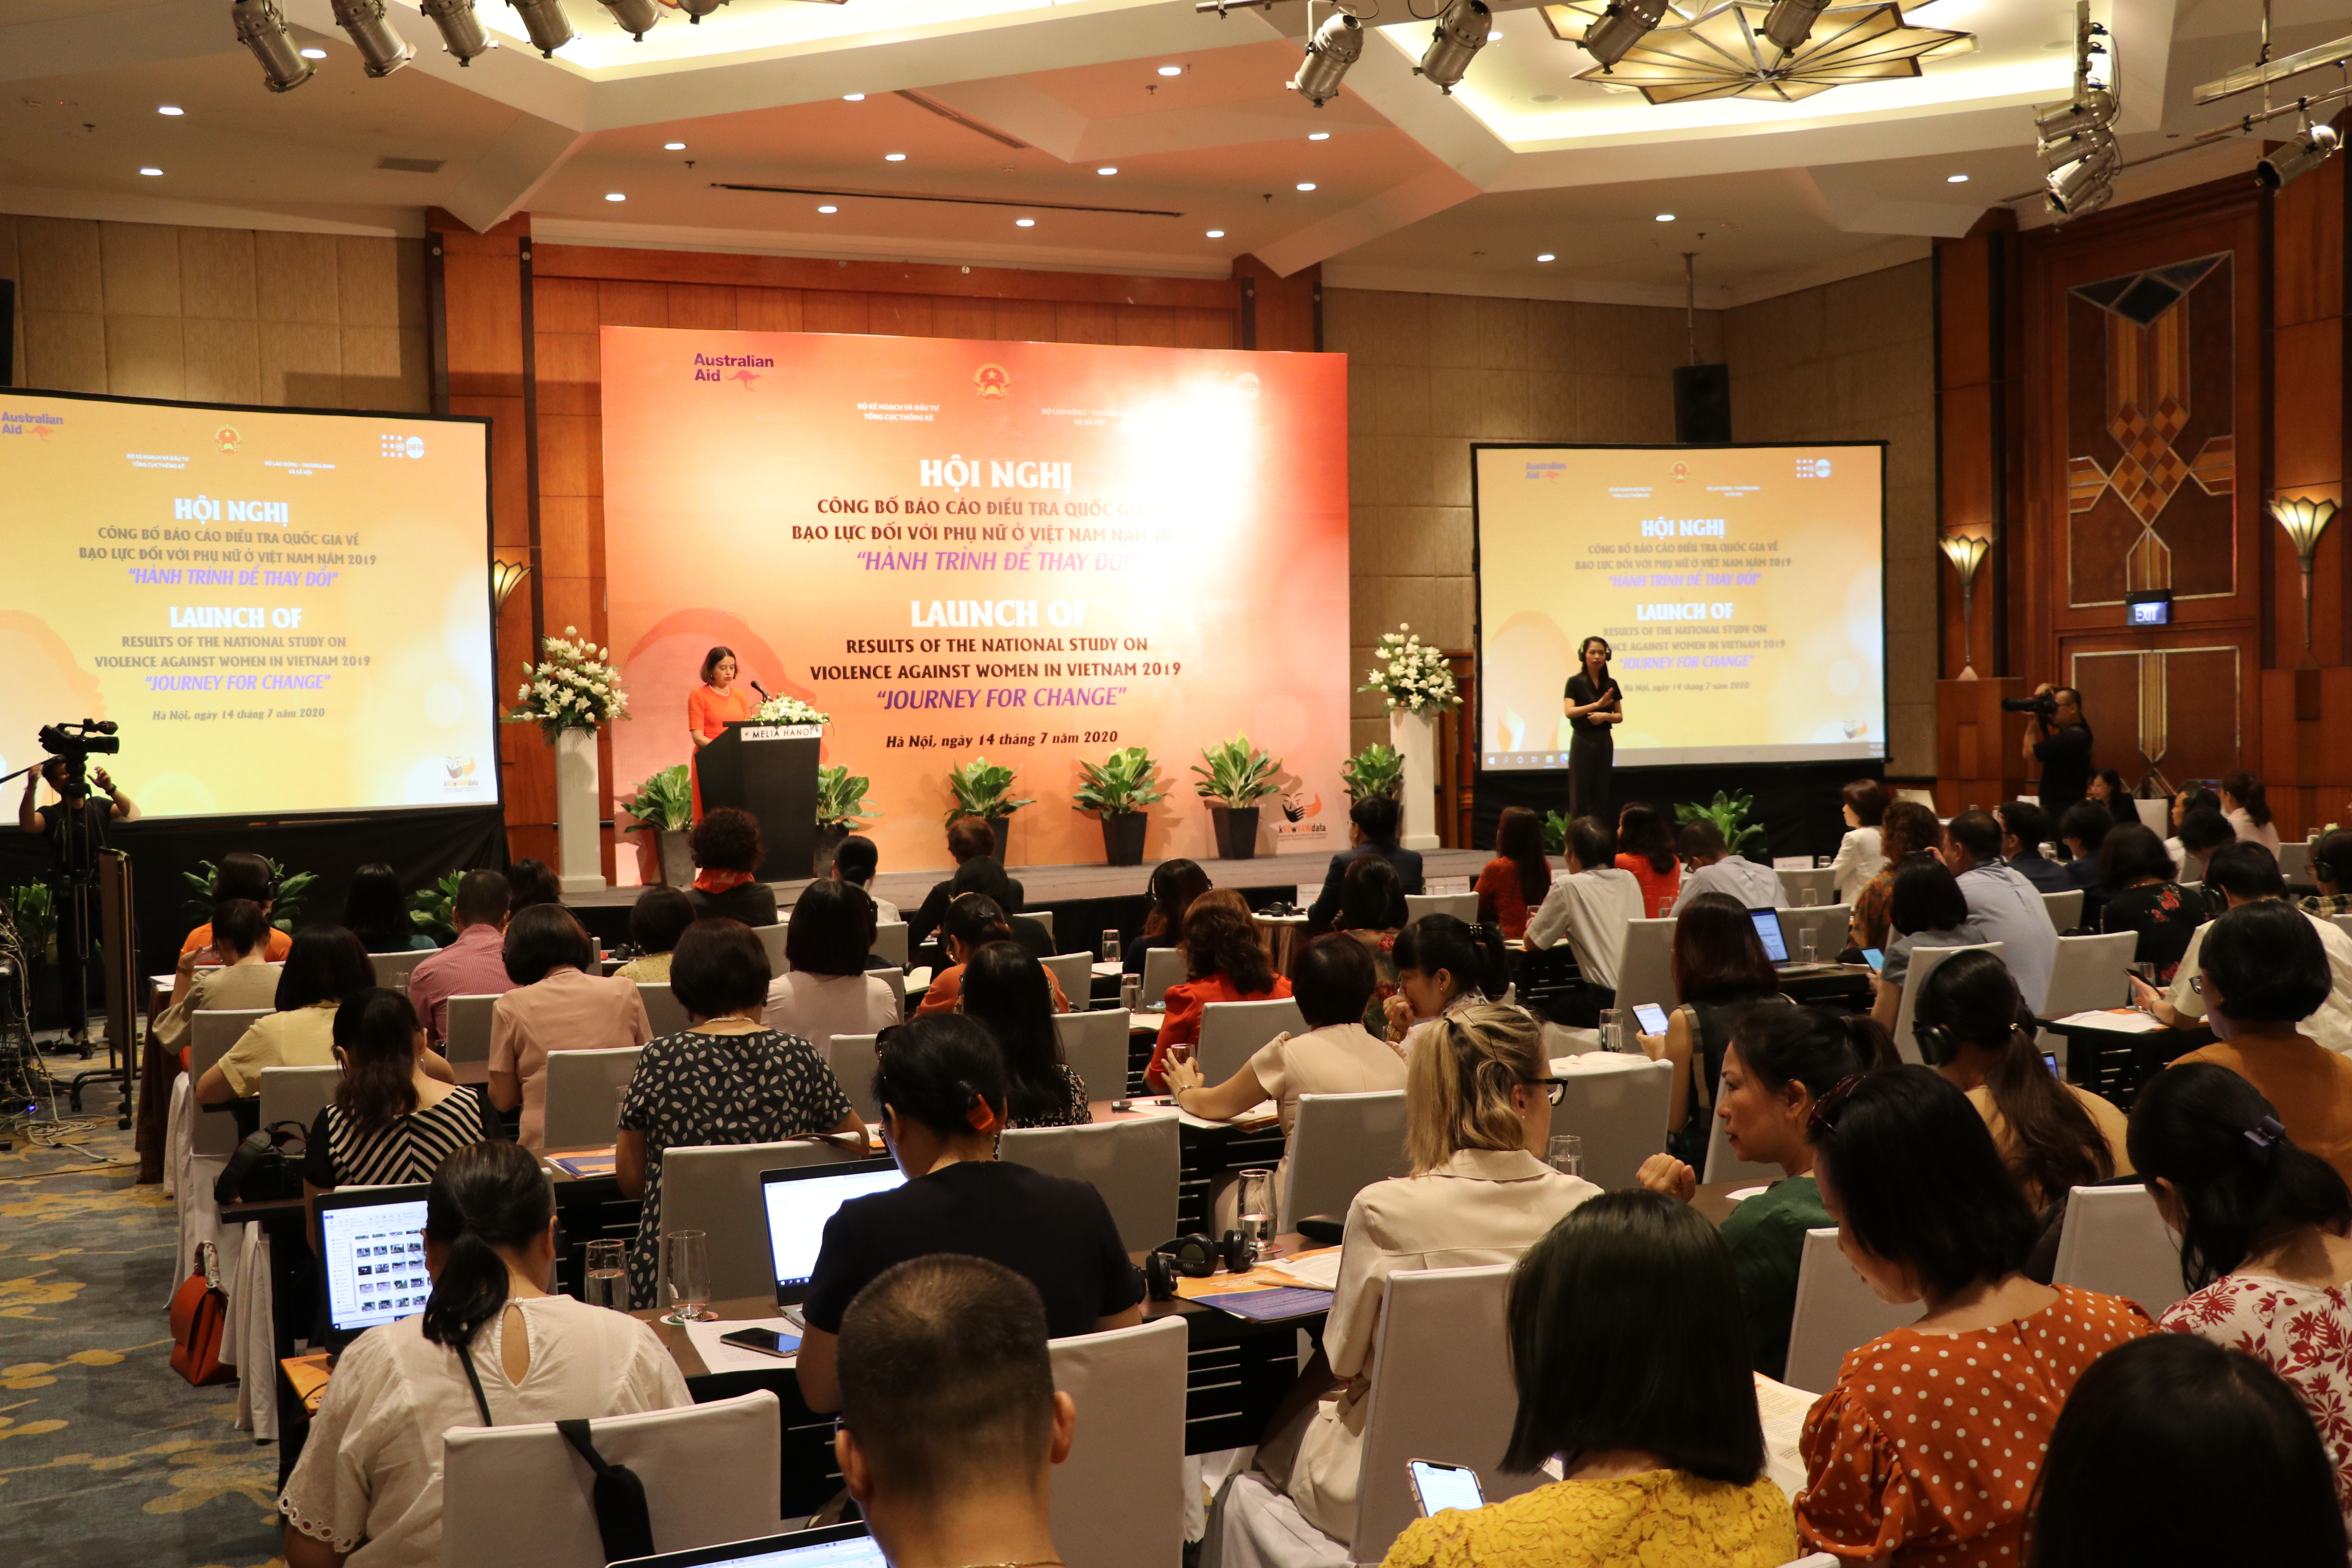 Second National Study on Violence Against Women in Viet Nam 2019 Released